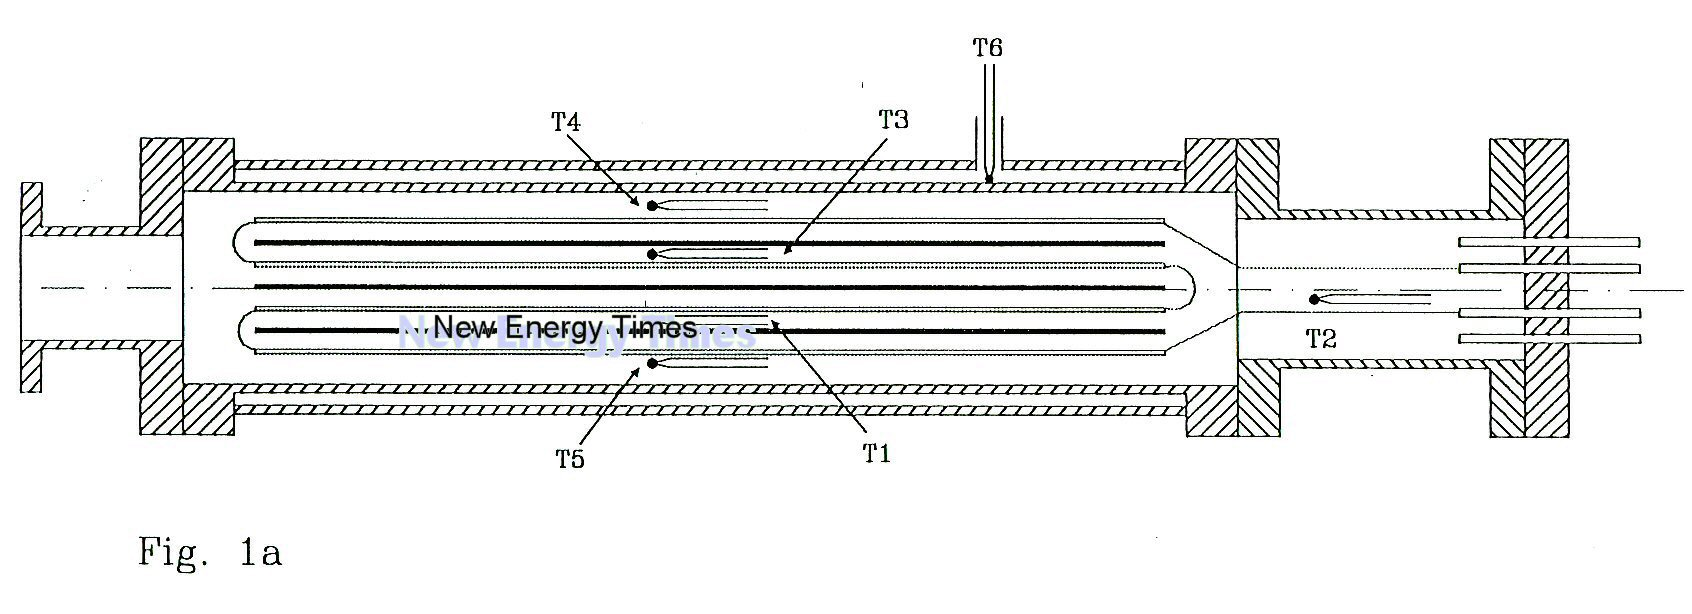 New Energy Times Issue 29 T5 Engine Diagram For Larger Image